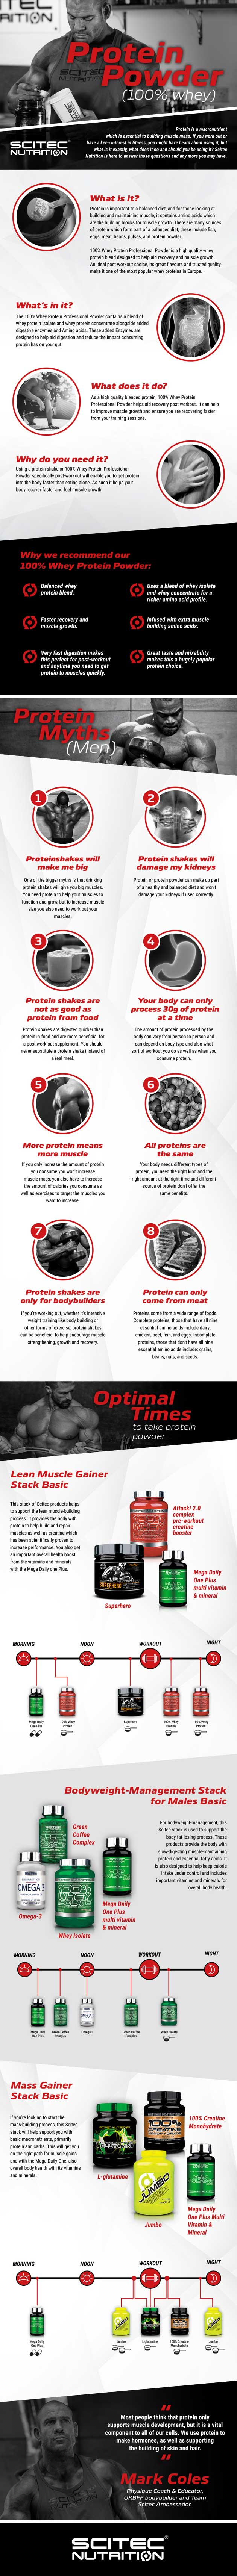 protein powder infographic